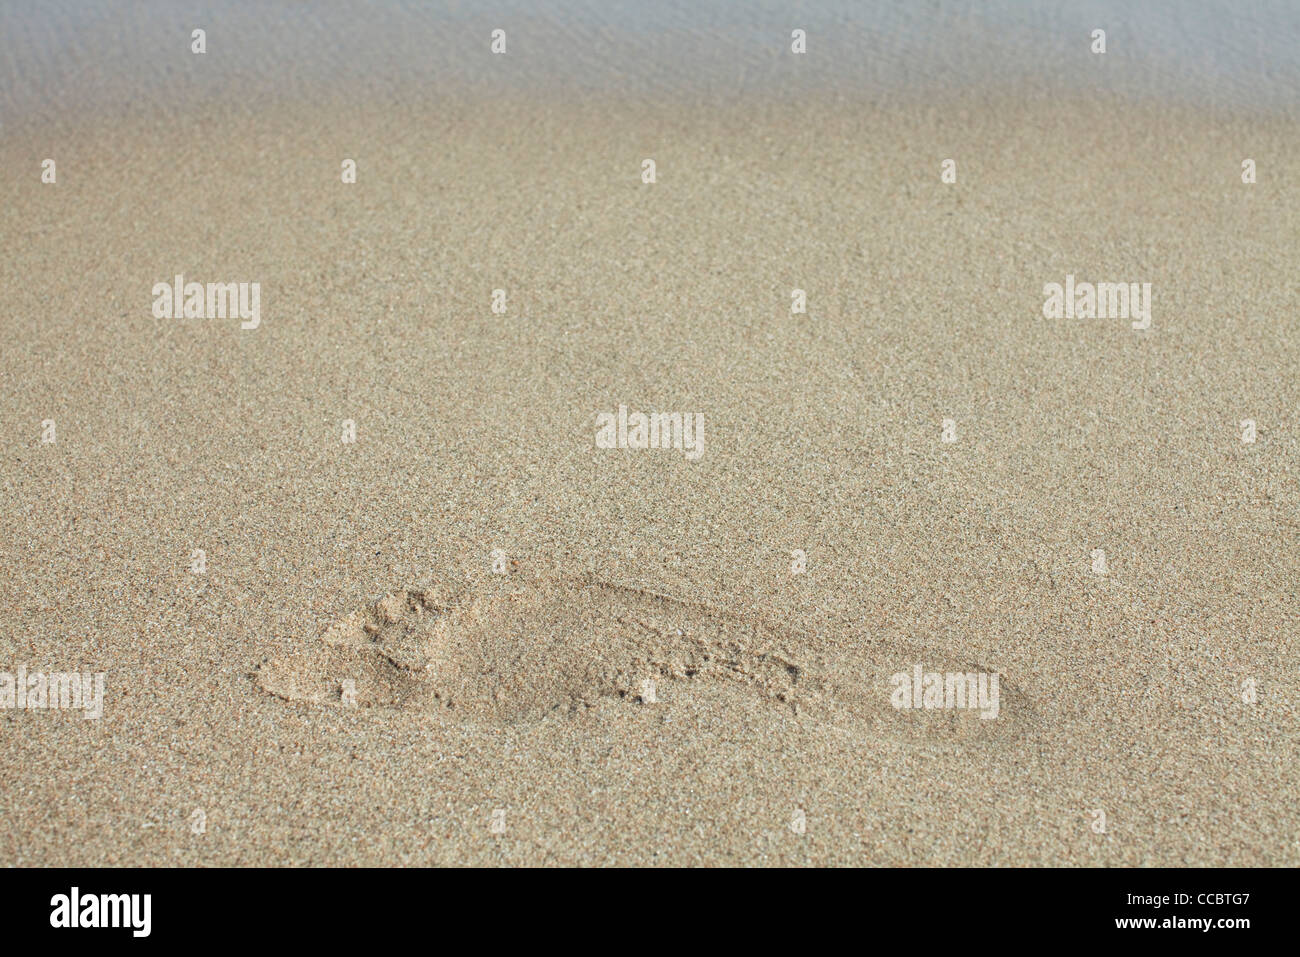 Footprint in sand - Stock Image